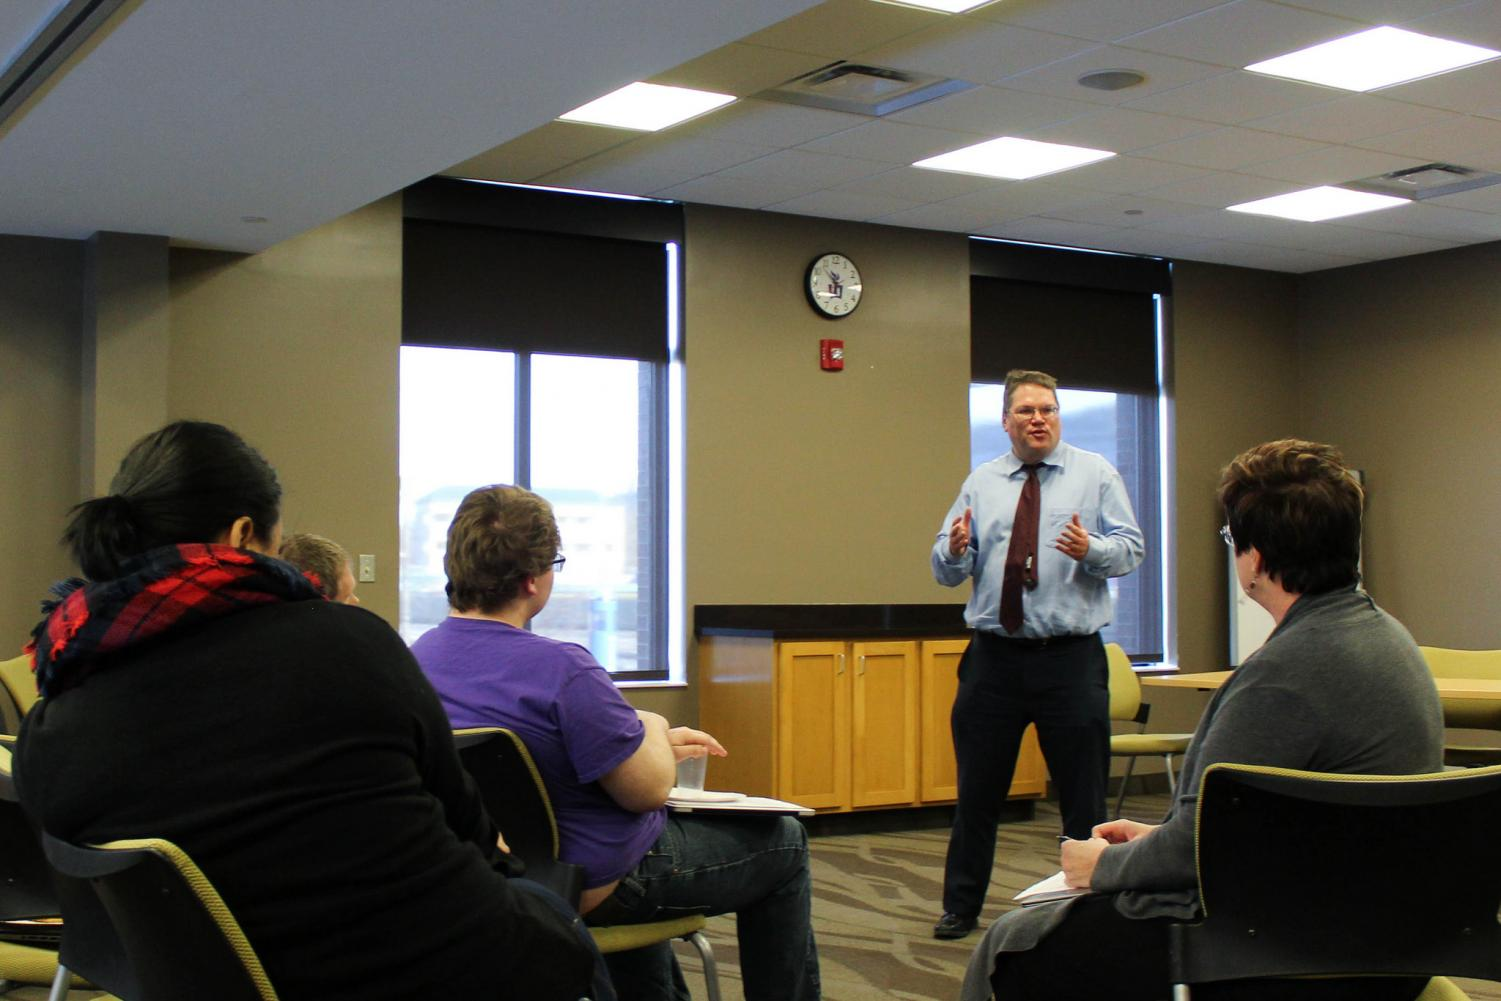 The Winona State Commission on Academic Freedom and Free Speech hosted forums in Haake Hall on Tuesday, April 17 and Wednesday, April 18 for students and community members to discuss the role the university plays in protecting and promoting free speech.